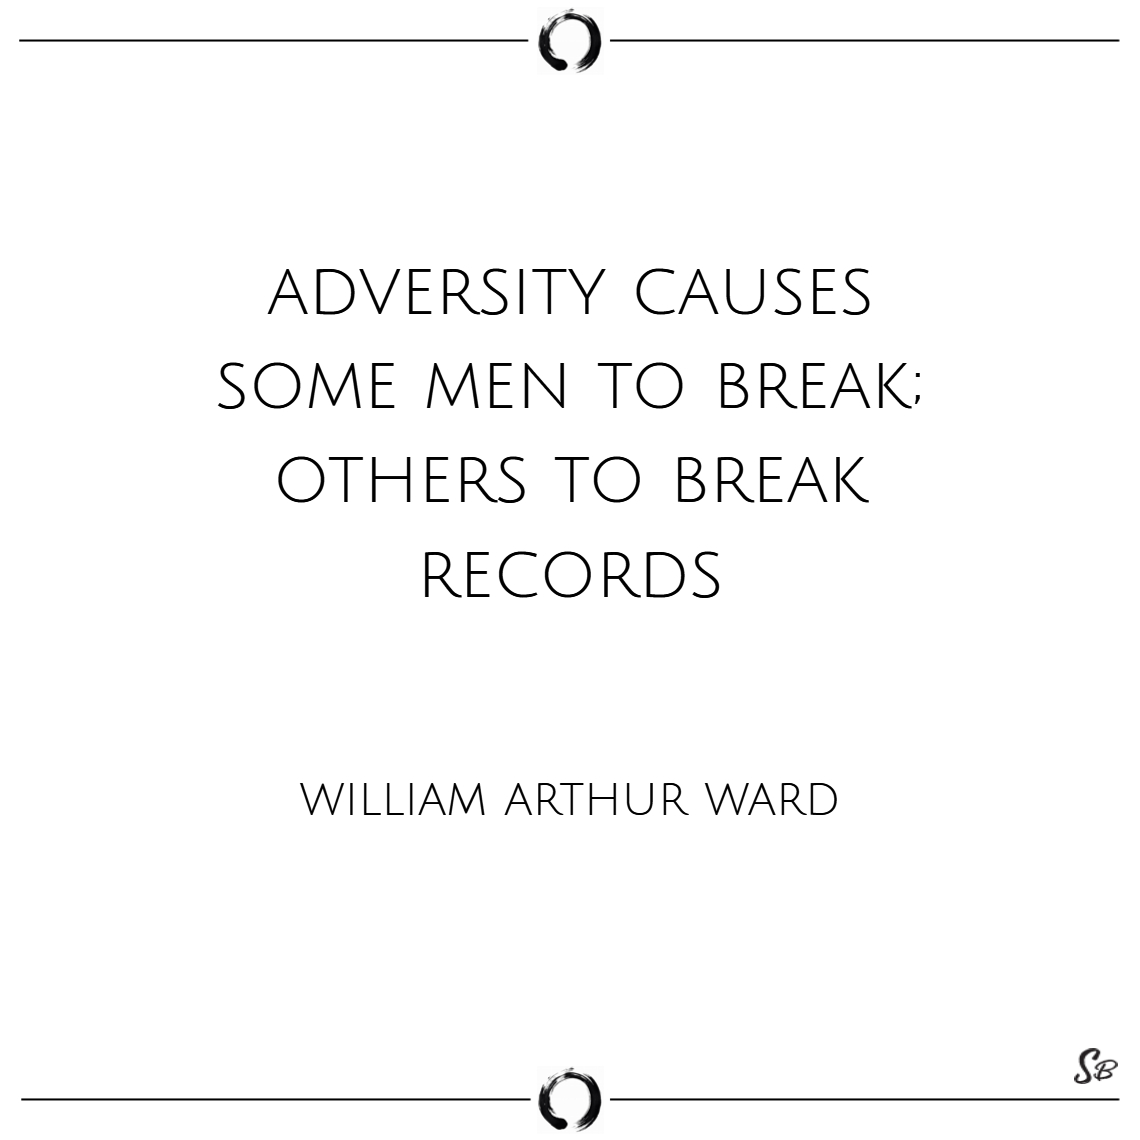 Adversity causes some men to break; others to brea